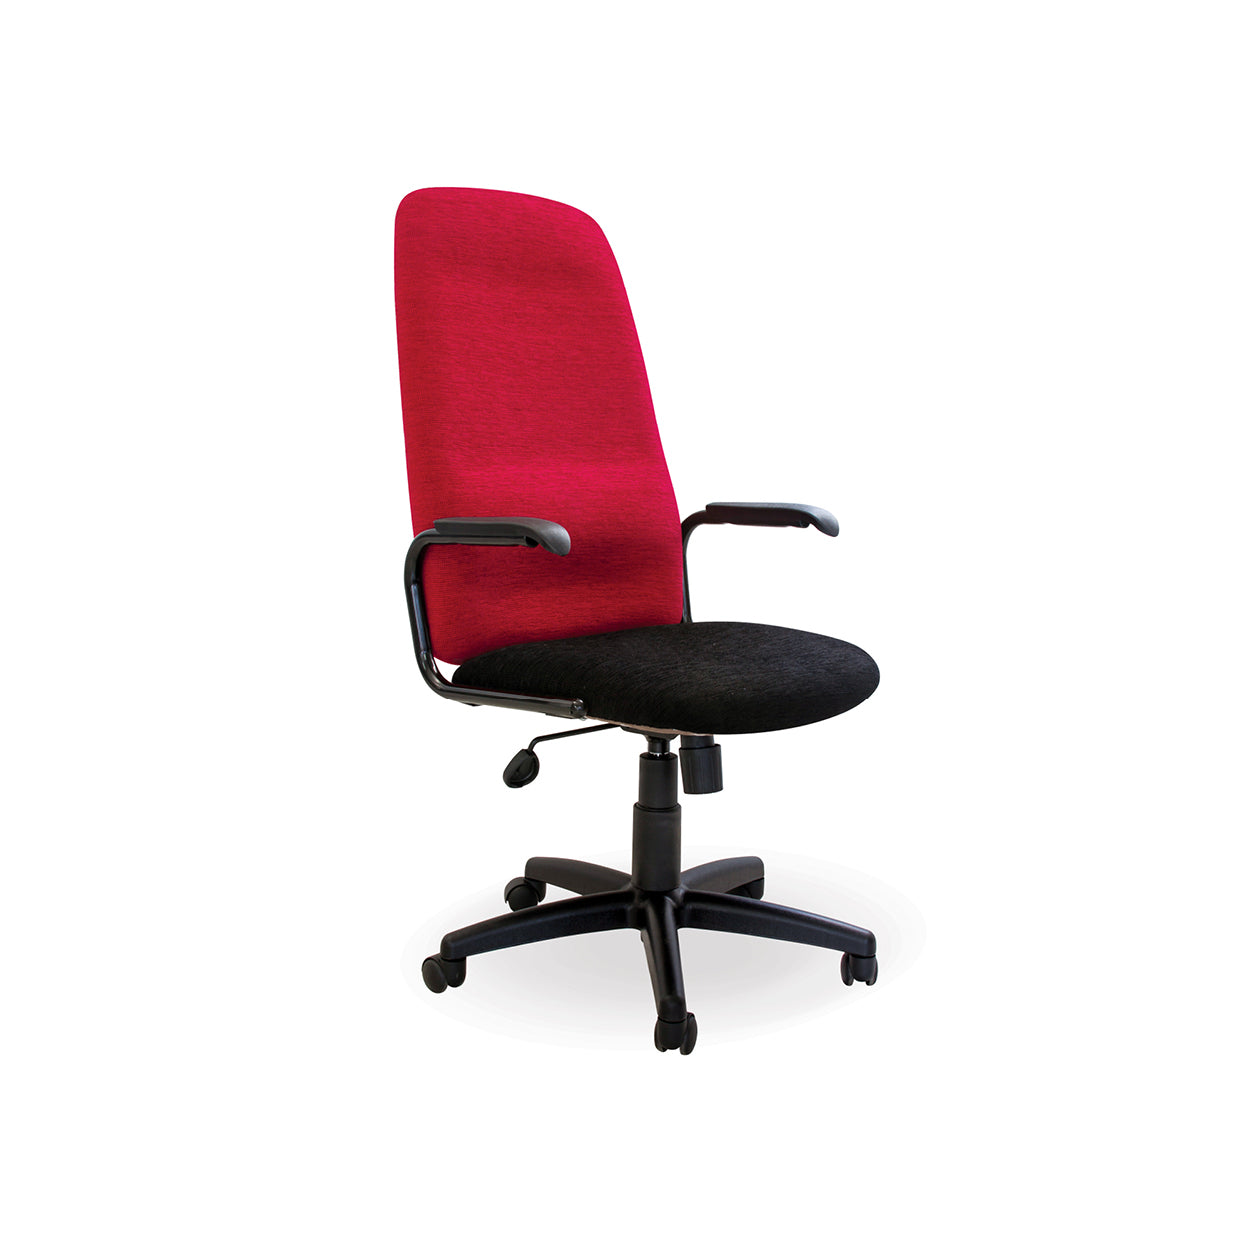 Hedcor high back chair